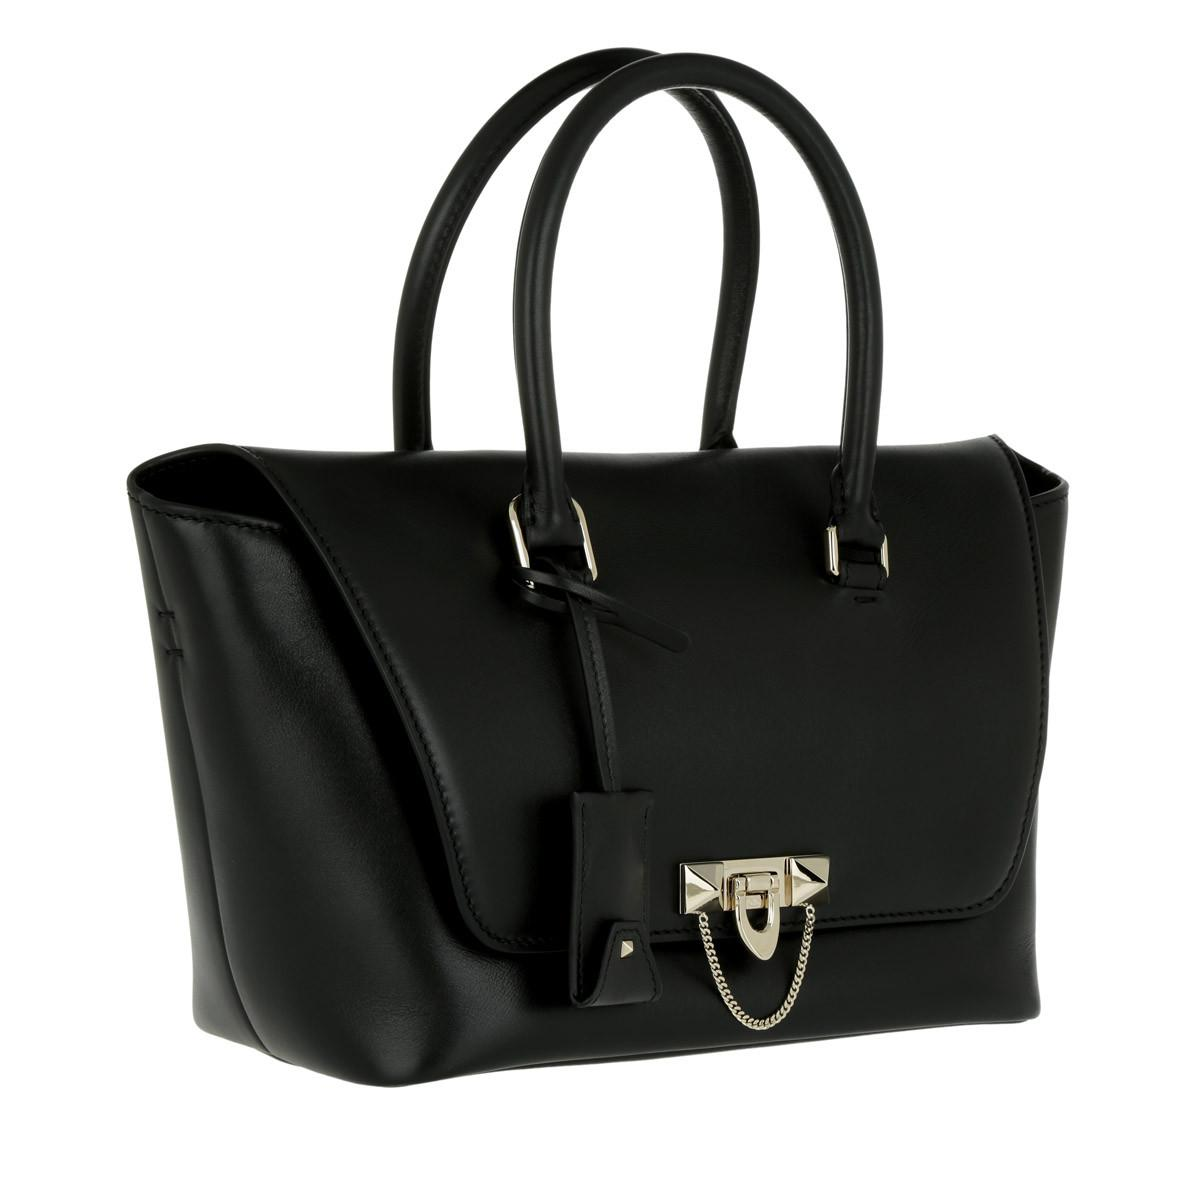 Valentino Demilune Small Double Handle Bag Black in Black - Lyst 8ad4e3a03a